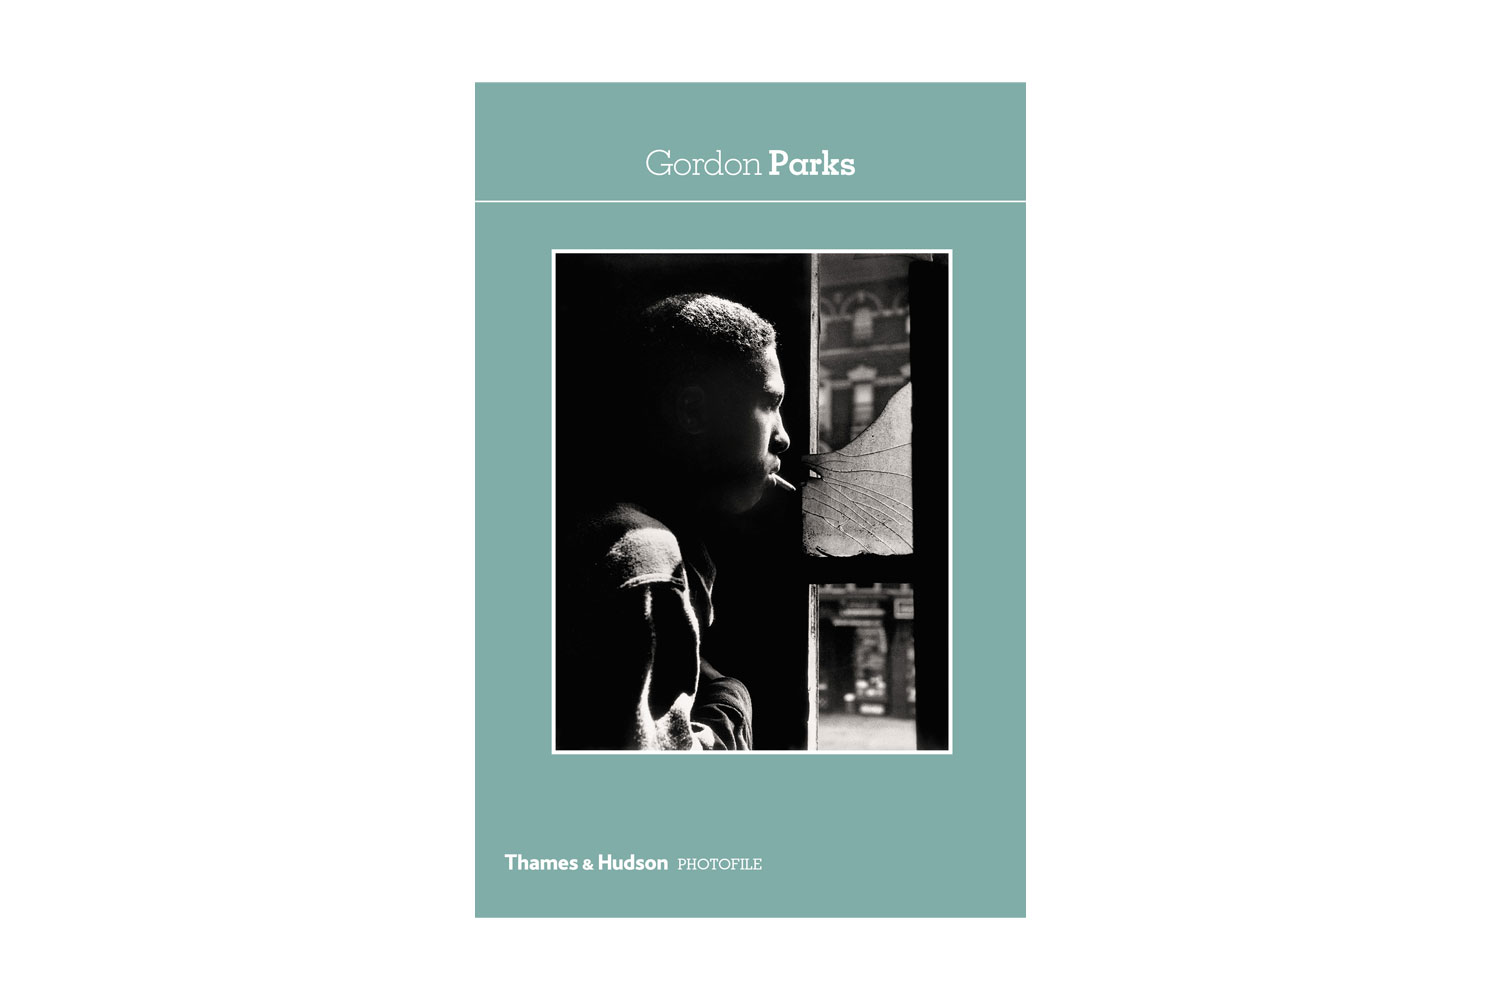 Gordon Parks, published by Thames & Hudson Thames & Hudson's pocket sized guide to the vast and varied career of Gordon Parks explores a major American photographer crossing cultural, political and social divides with sophistication, sensitivity and style.